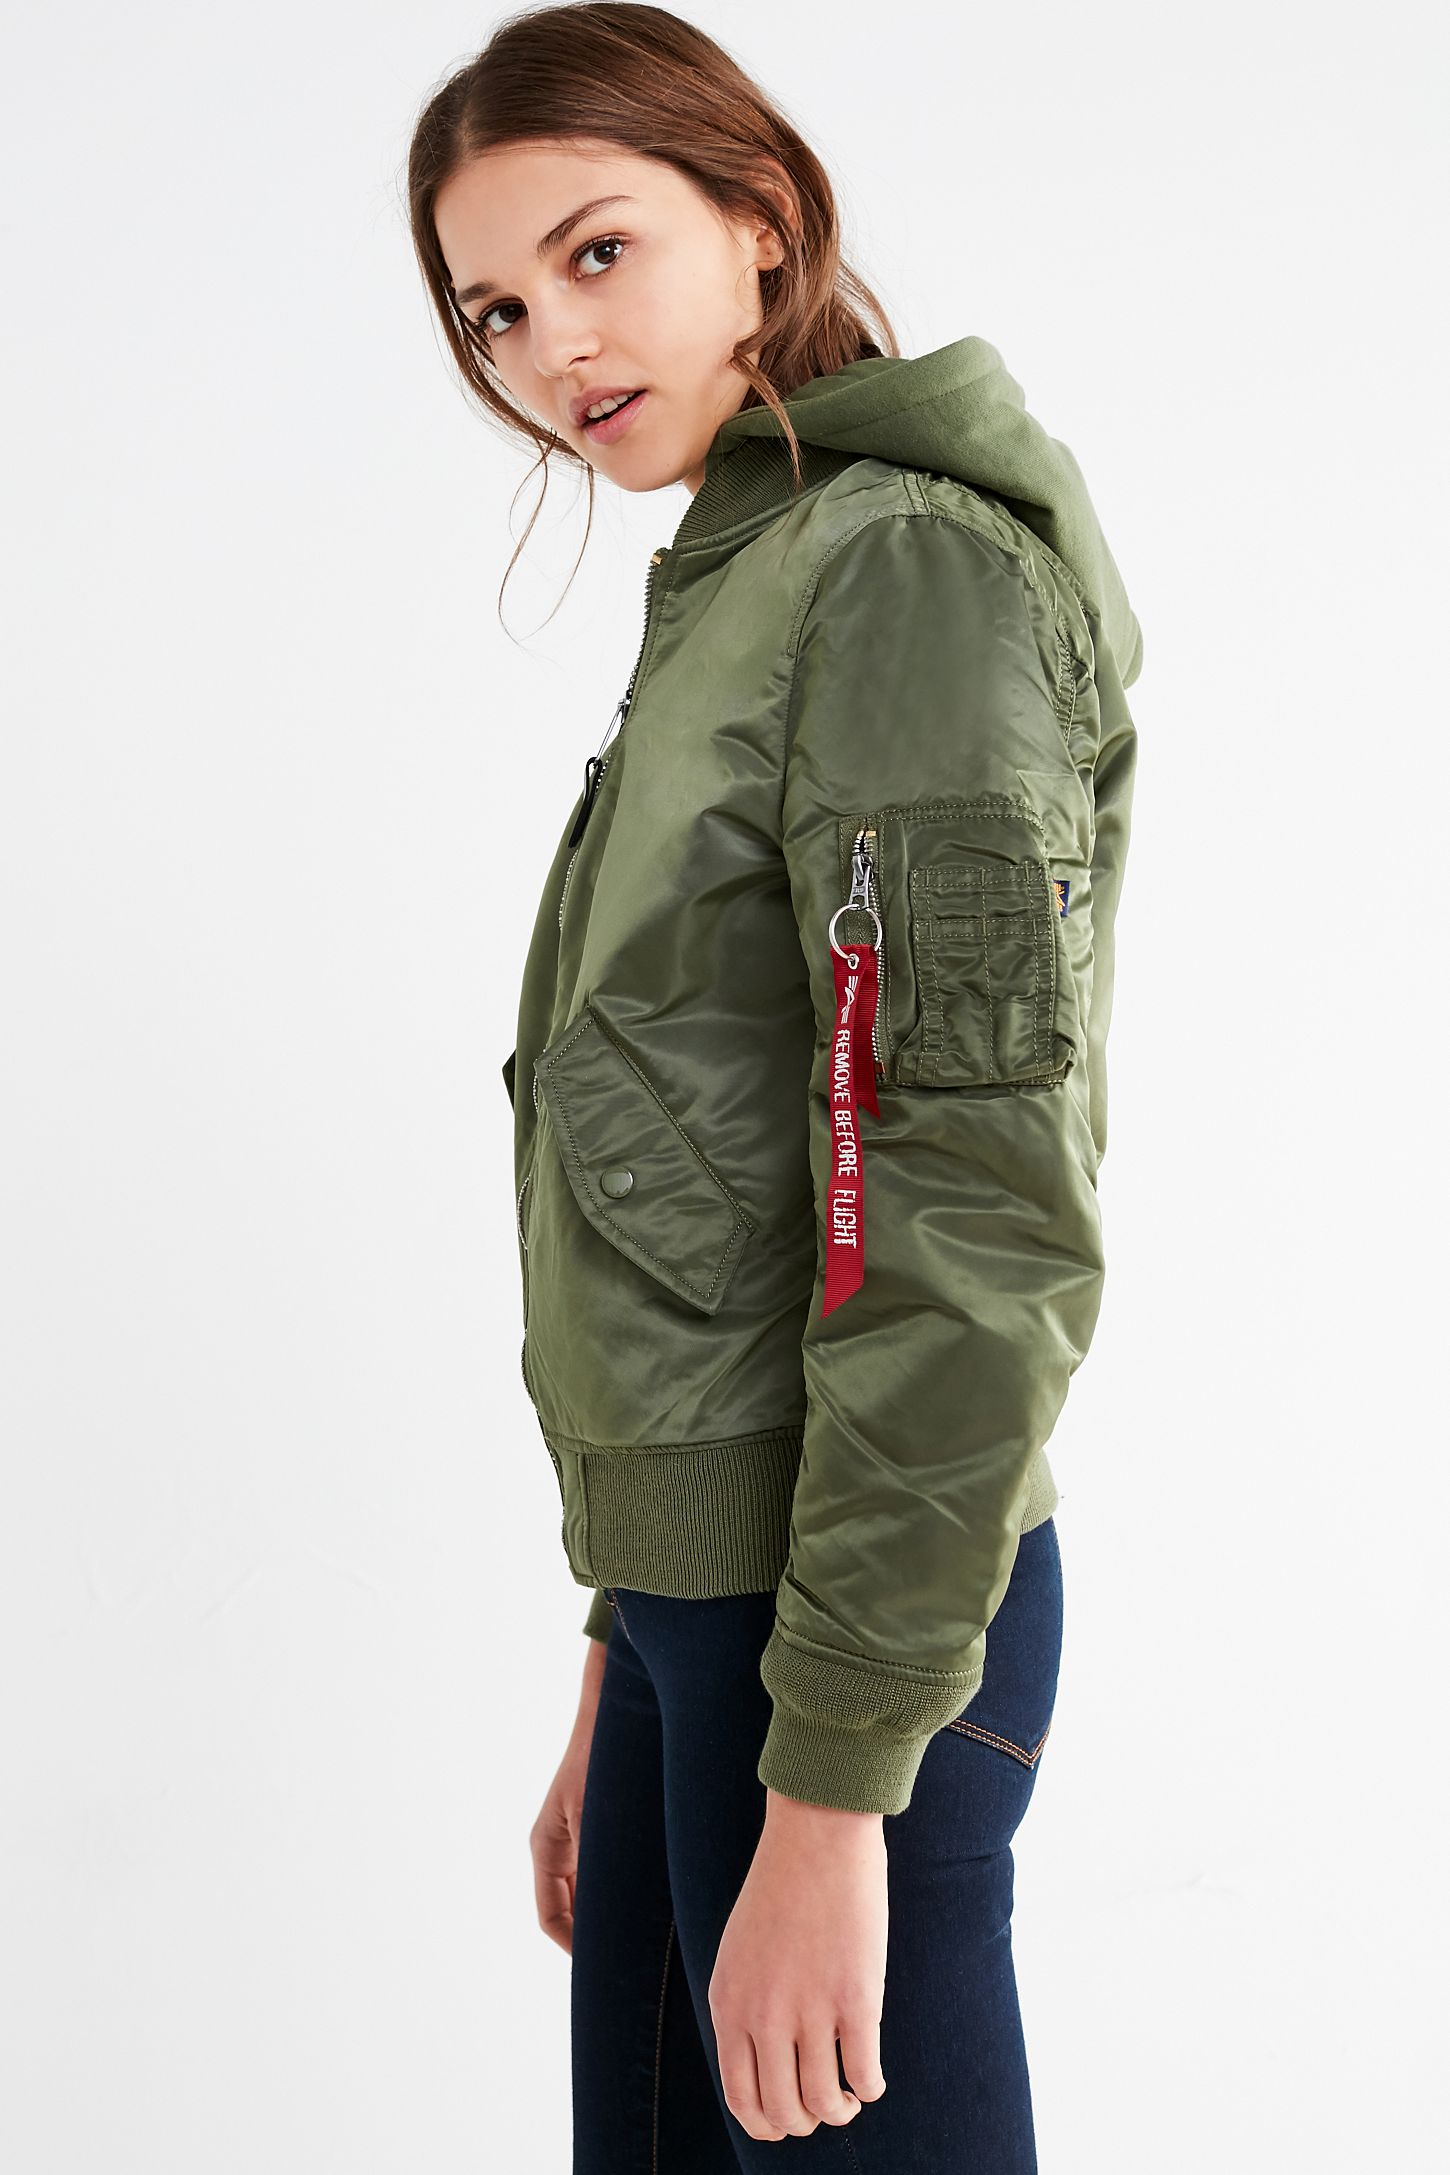 8d22c0ffea8cf Slide View  6  Alpha Industries MA-1 Natus Bomber Jacket